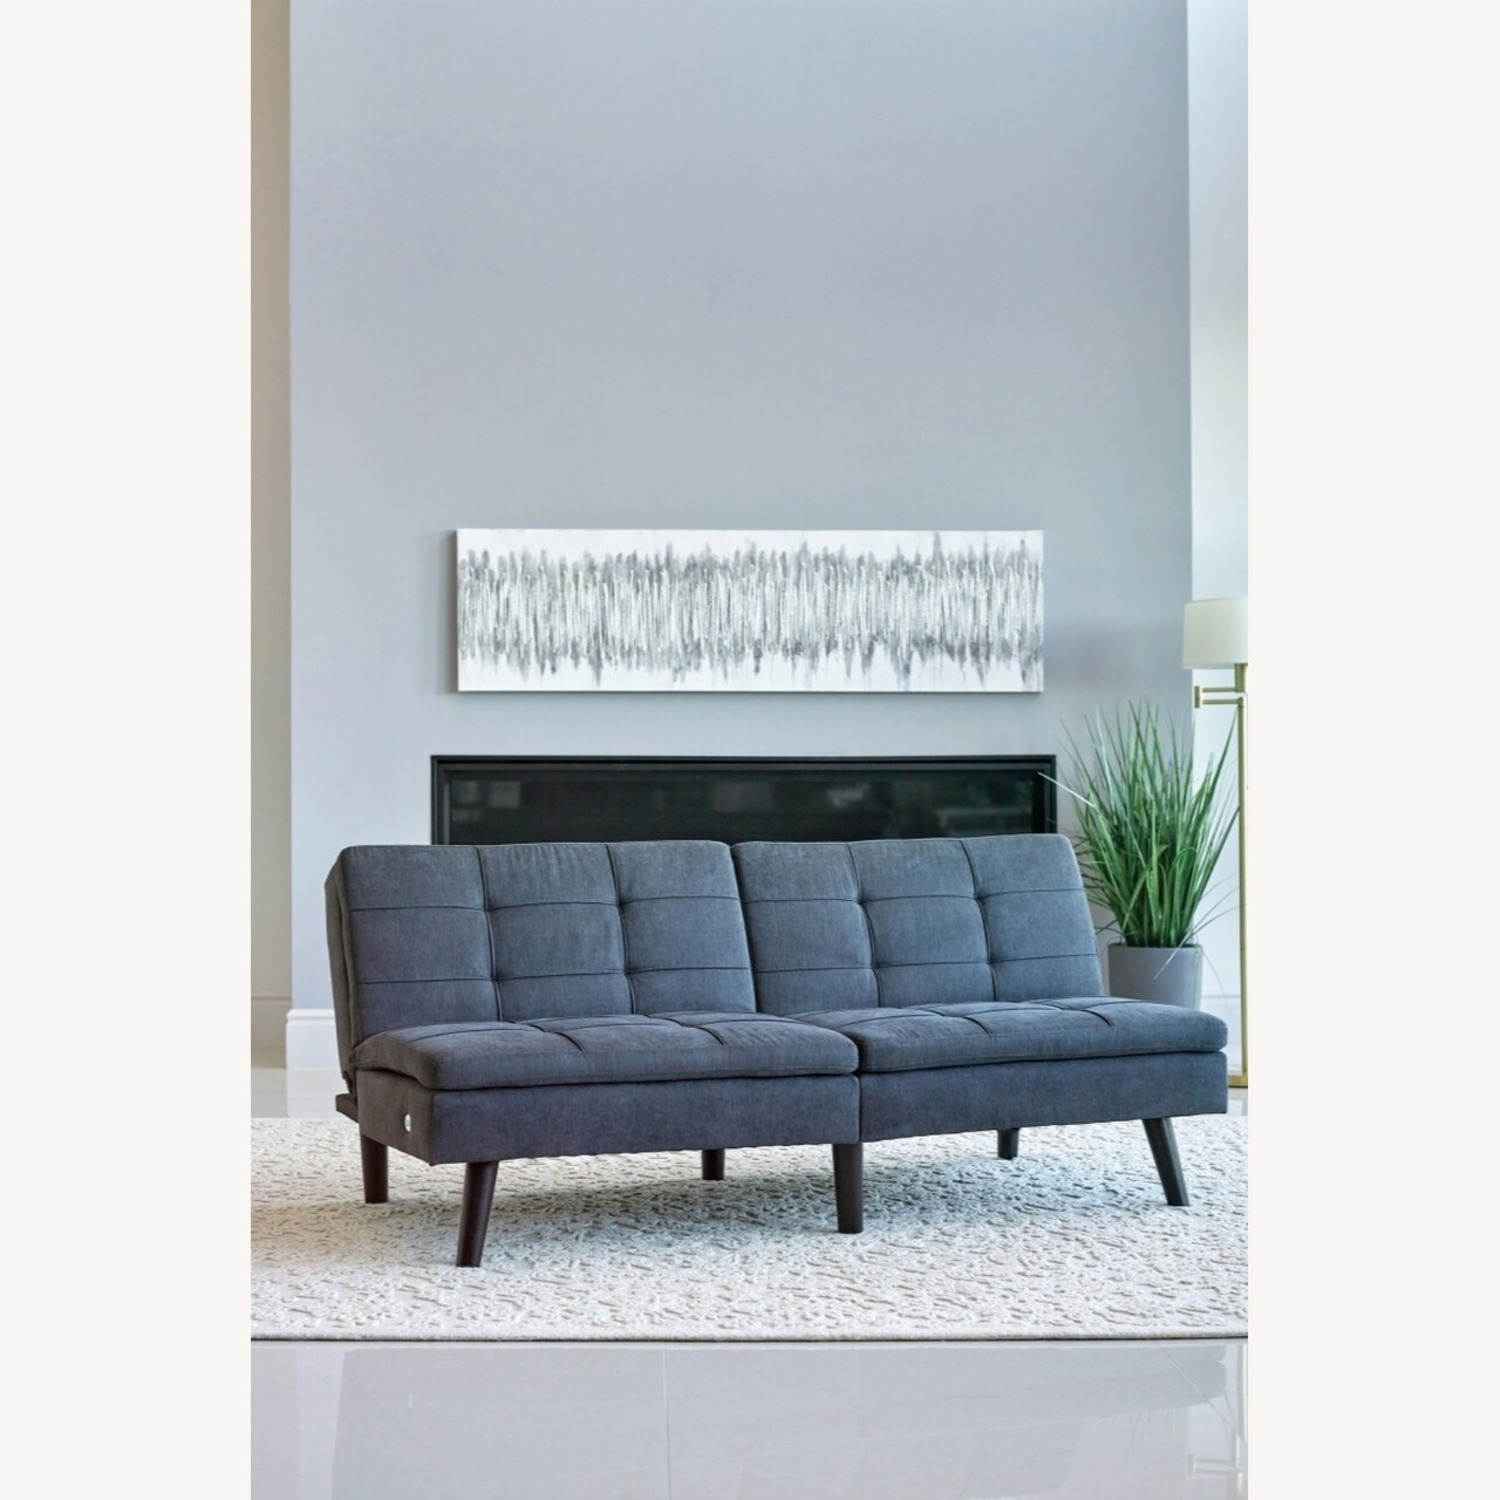 Sofa Bed In Grey Fabric W/ Dual USB Outlet - image-2